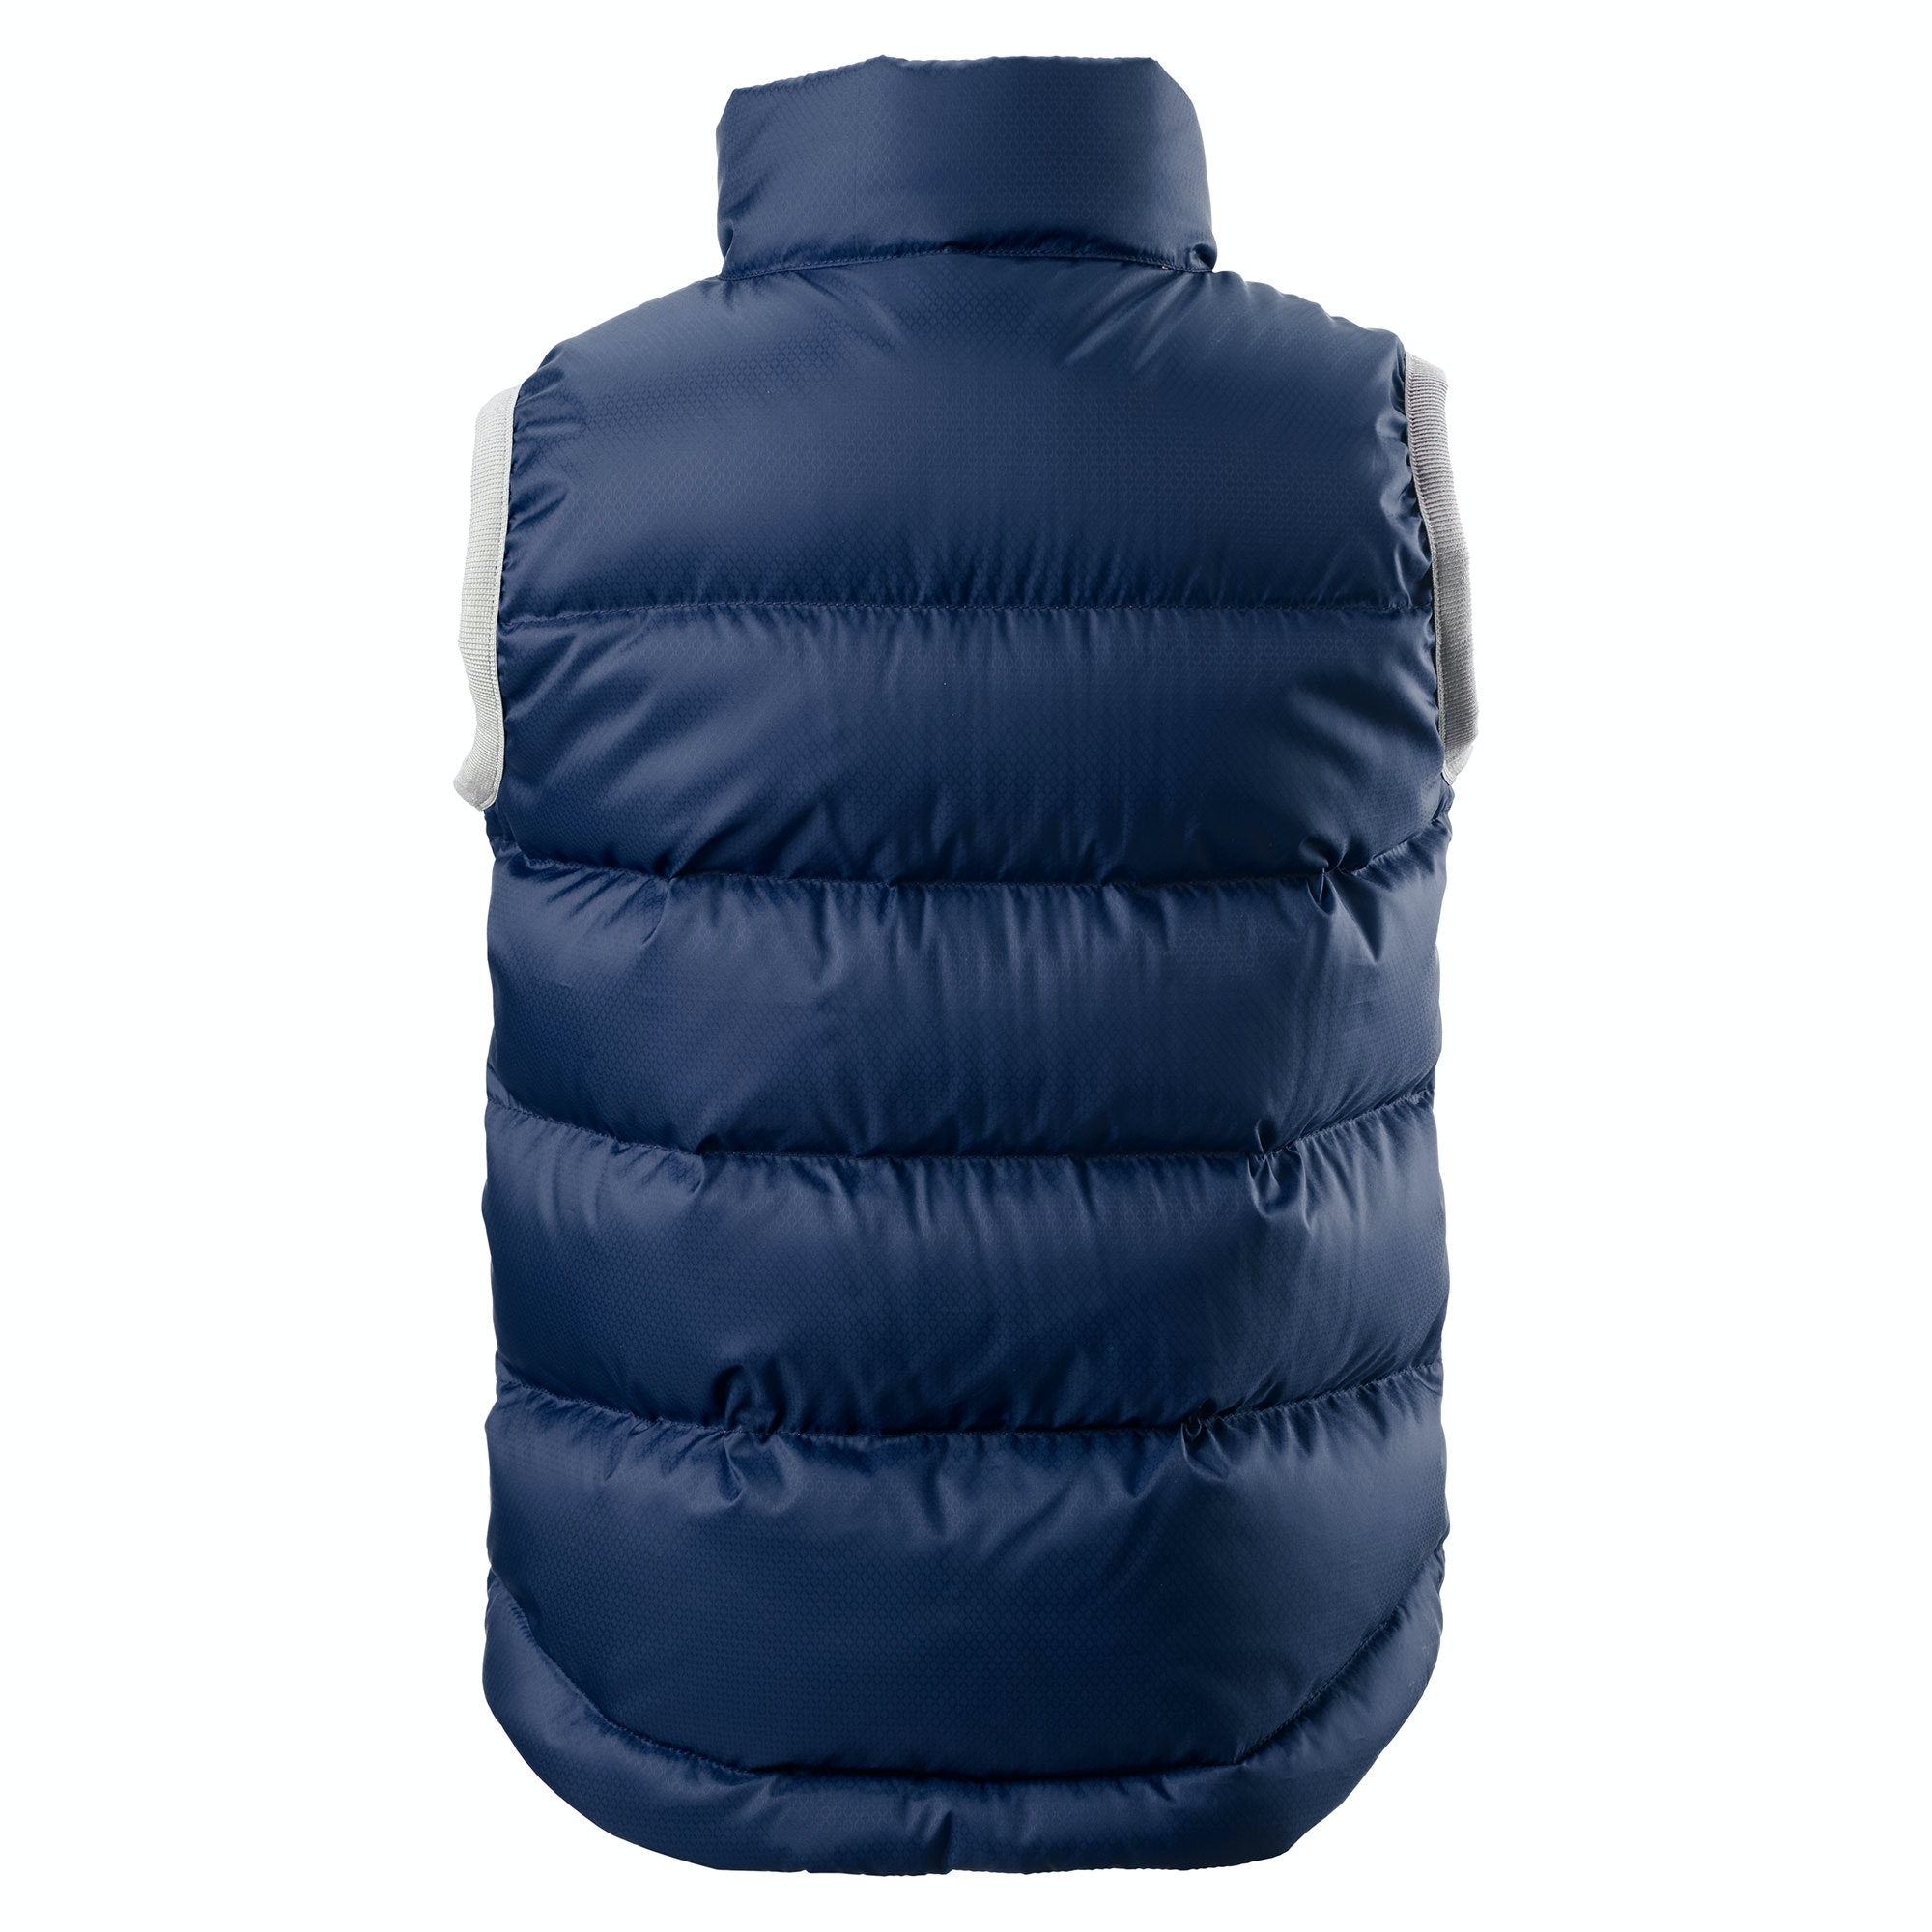 NEW-Kathmandu-Elcho-Kids-039-Boys-039-Girls-039-Warm-Winter-Outdoor-Duck-Down-Puffer-Vest thumbnail 11